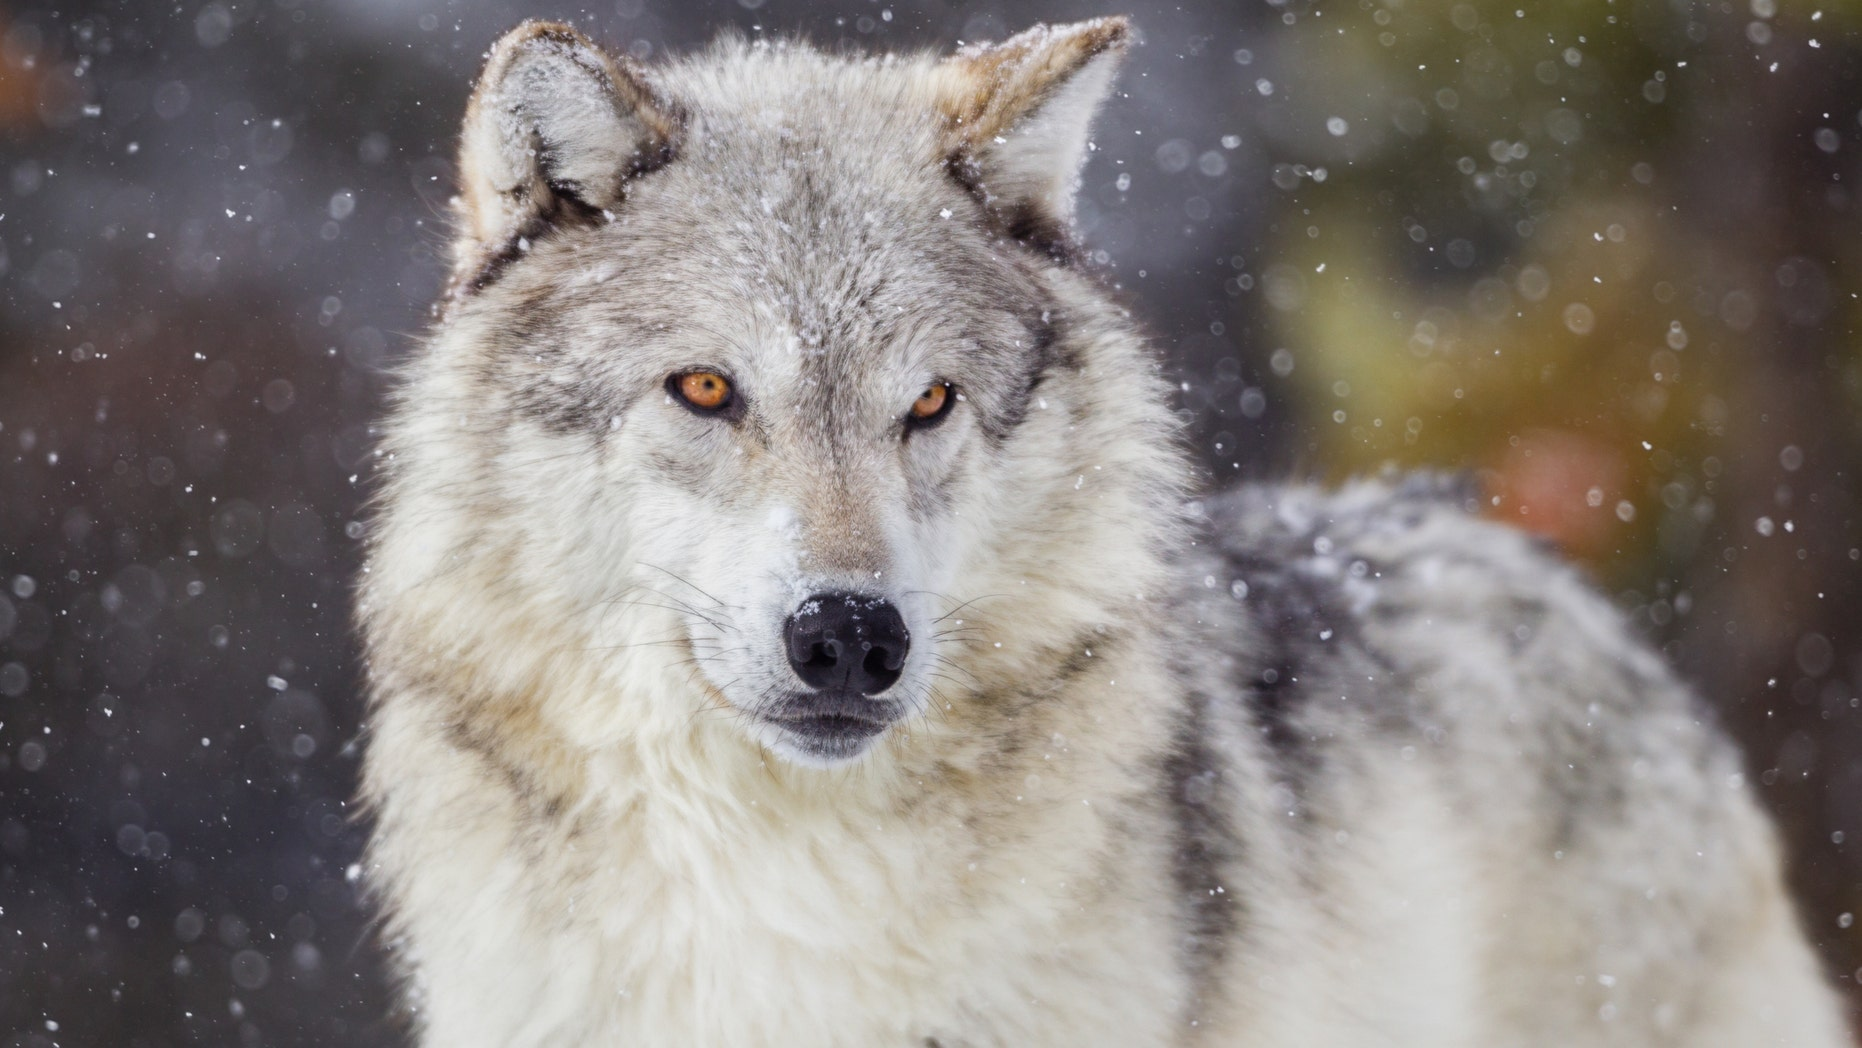 Michigan poacher who killed 18 wolves, bald eagles loses hunting license for life